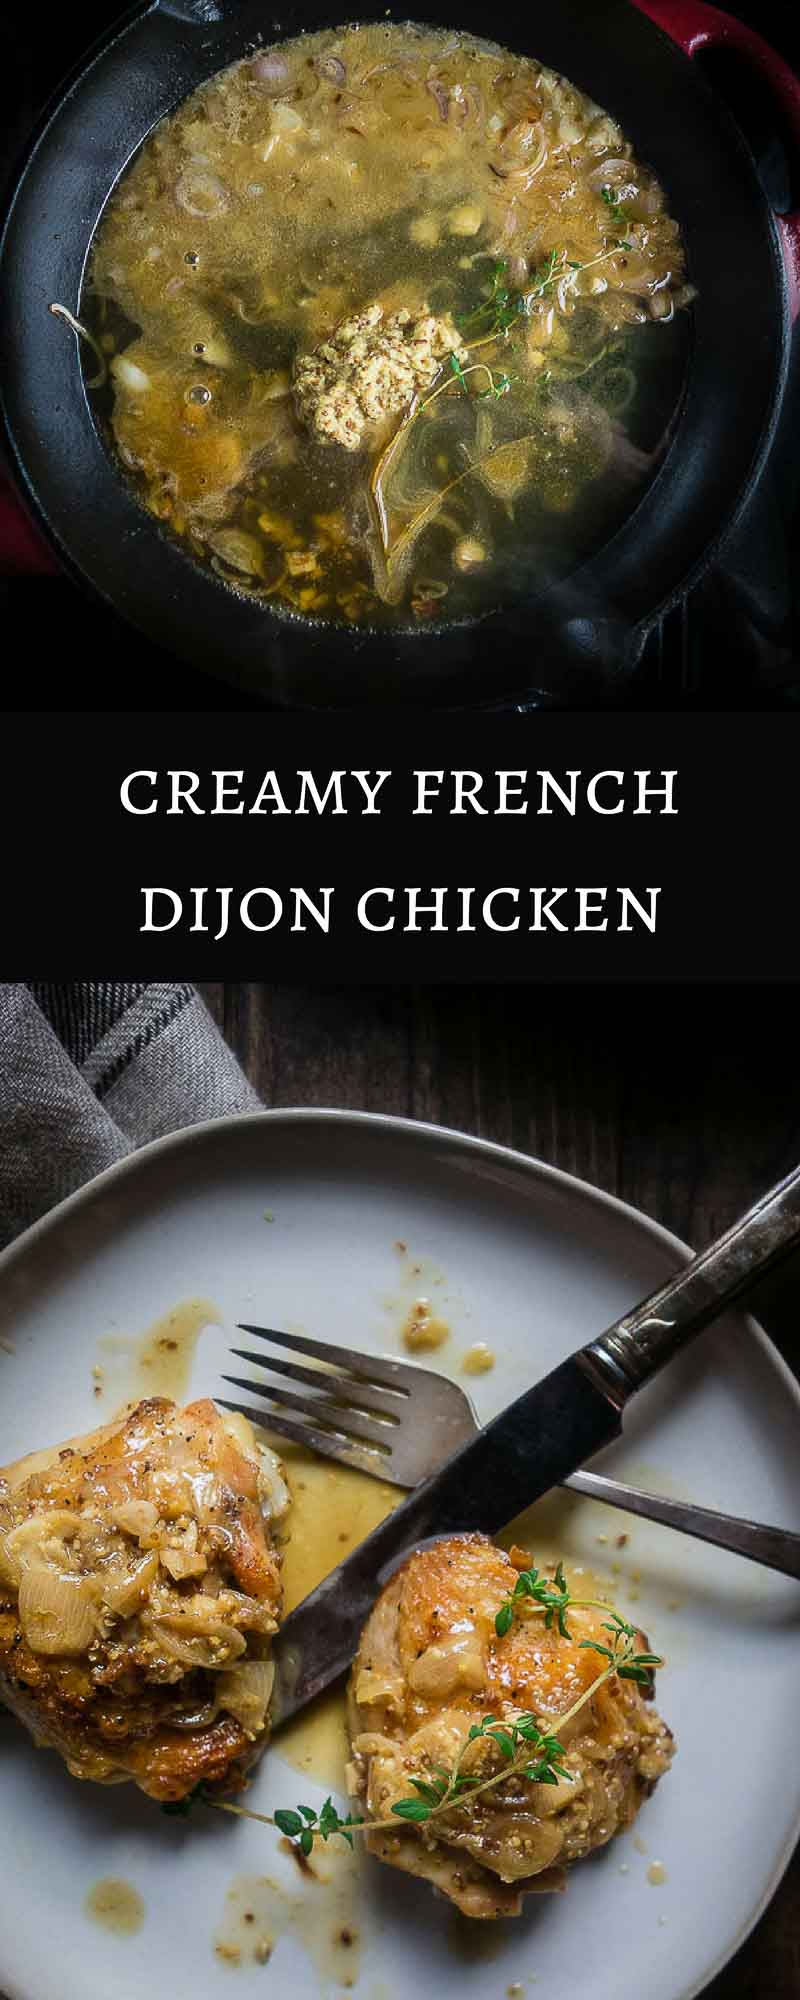 Possibly the best chicken recipe ever, this chicken braised in white wine and Dijon mustard is first browned to keep in all the juices, then braised in a sauce of white wine and grainy Dijon mustard. And all in less than an hour to the table!chicken dijonnaise | chicken with wine sauce | french cooking | french chicken | chicken with mustard sauce | white wine mustard sauce |  creamy french mustard chicken | skillet dijon chicken | dijon braised chicken